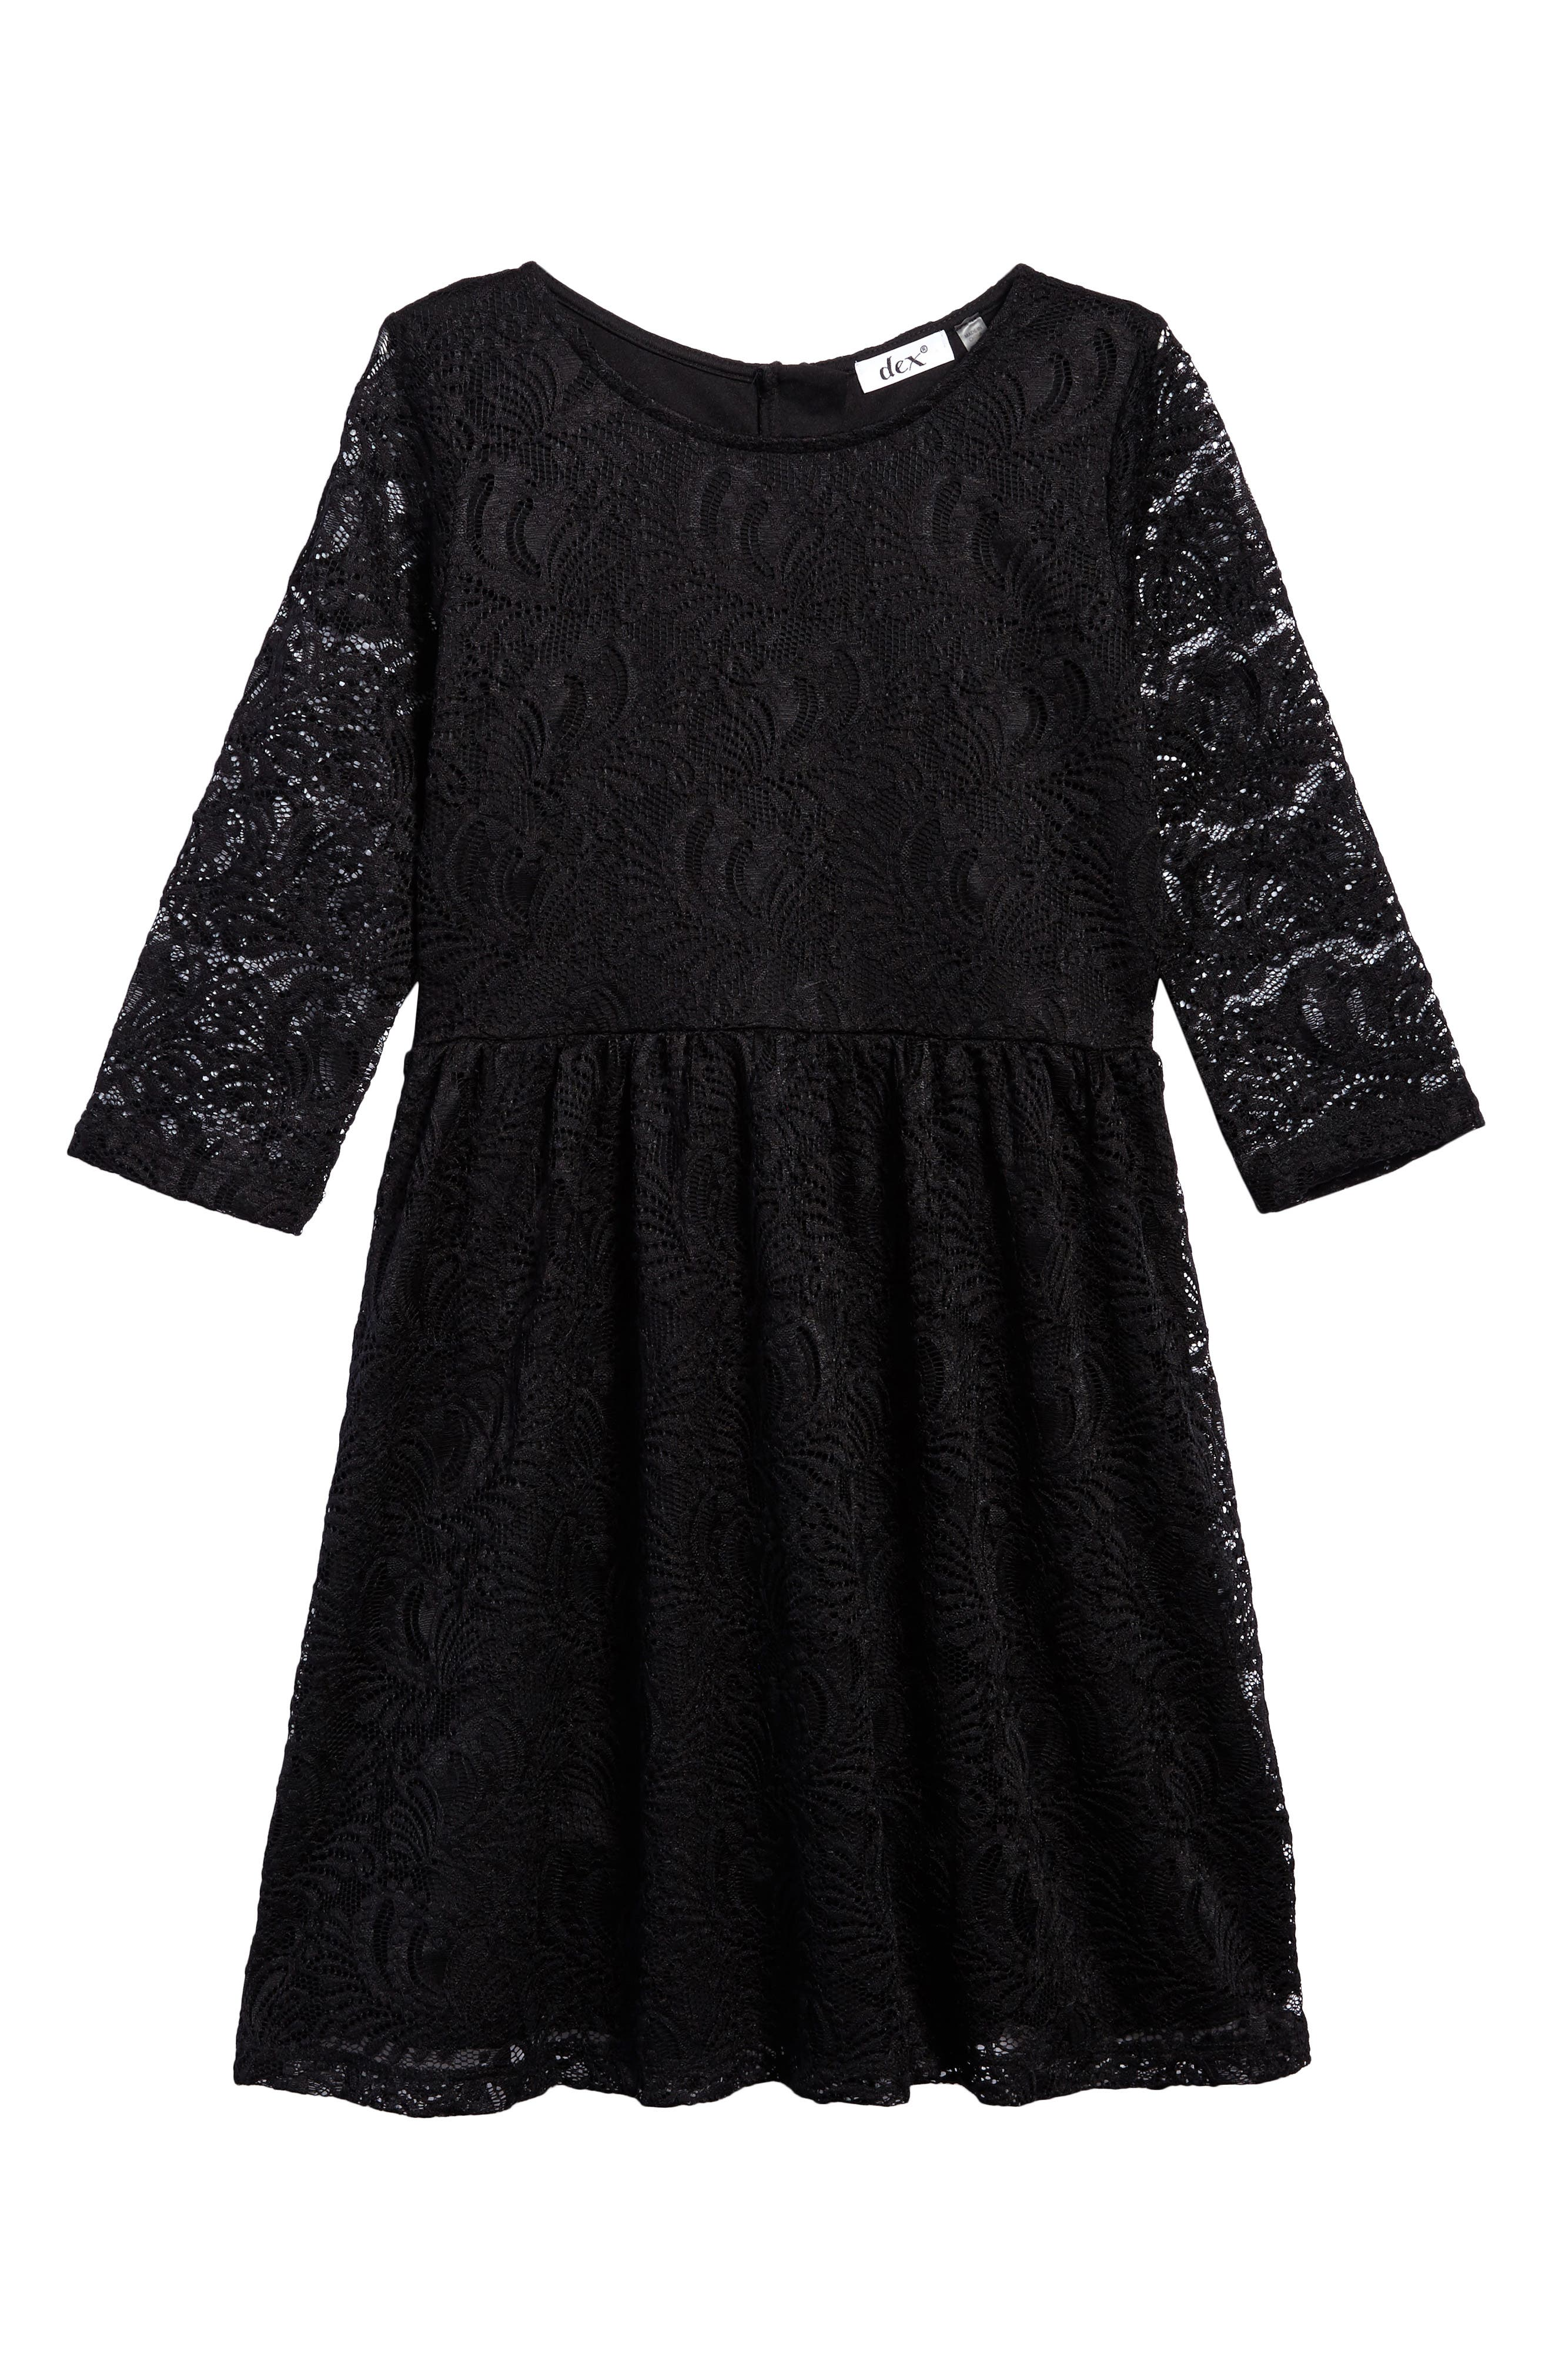 Lace Party Dress,                             Main thumbnail 1, color,                             001